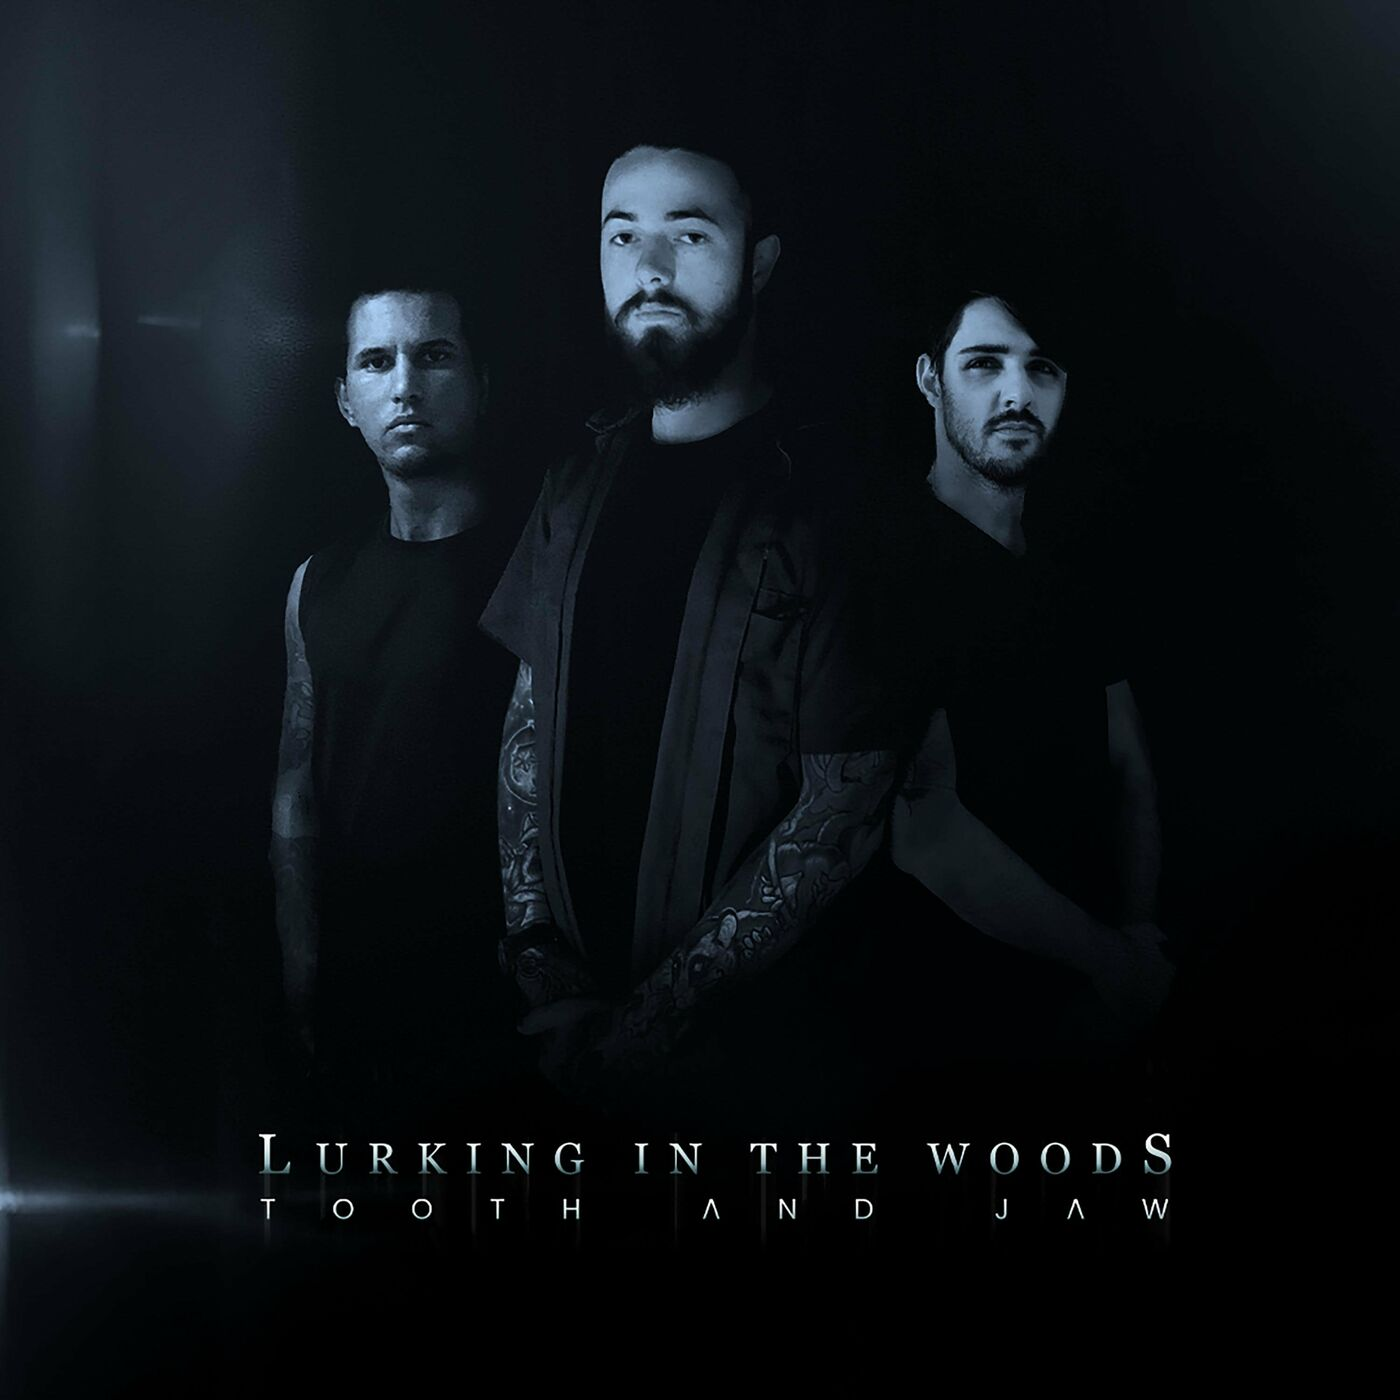 Lurking In The Woods - Tooth and Jaw [single] (2021)